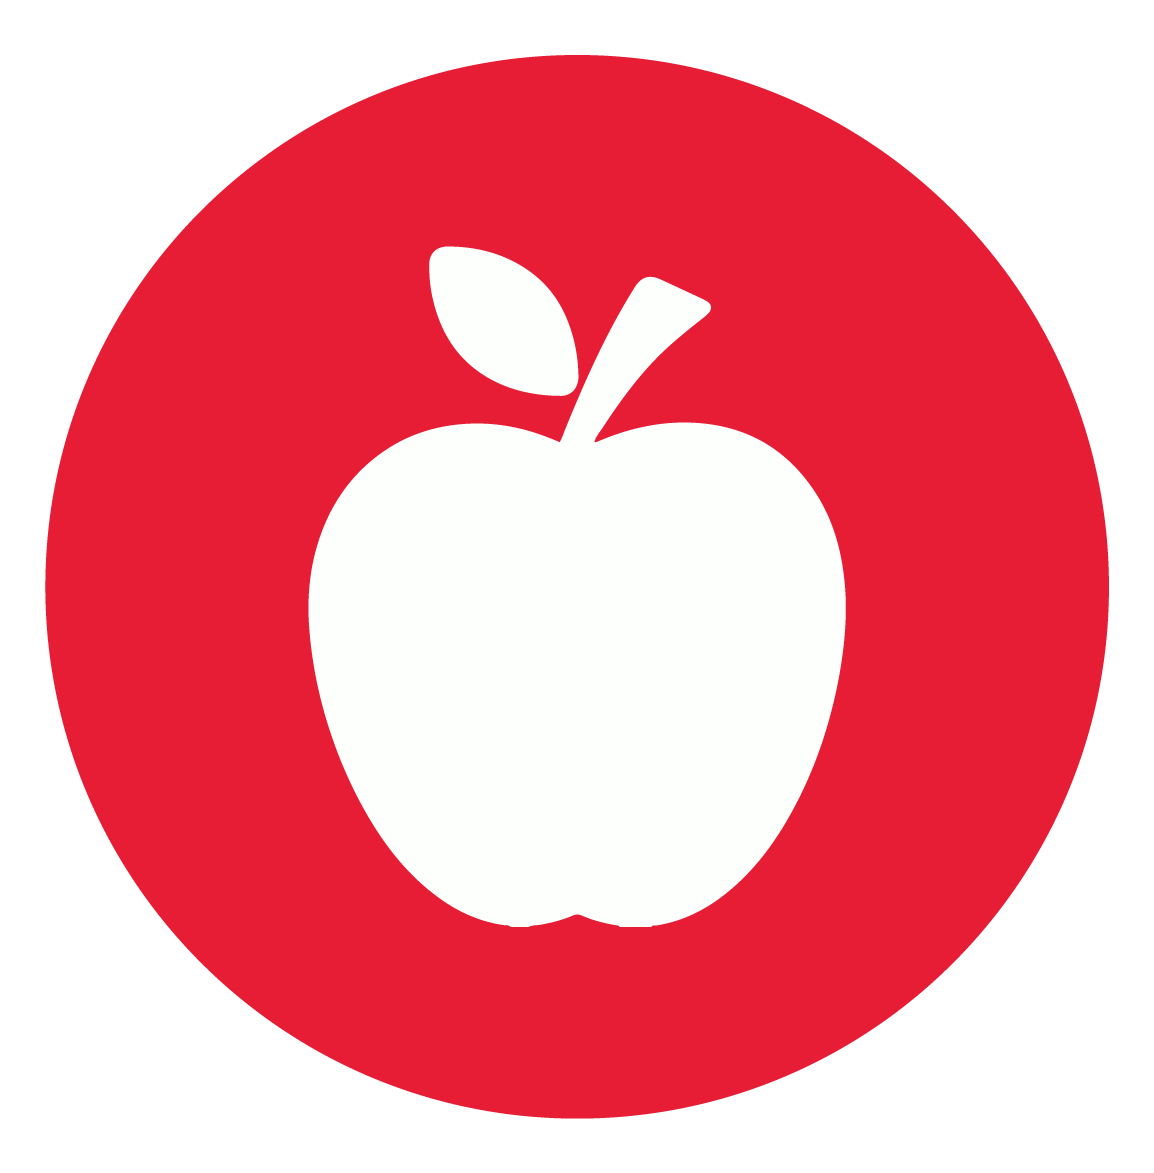 Apple_Icon-05.png